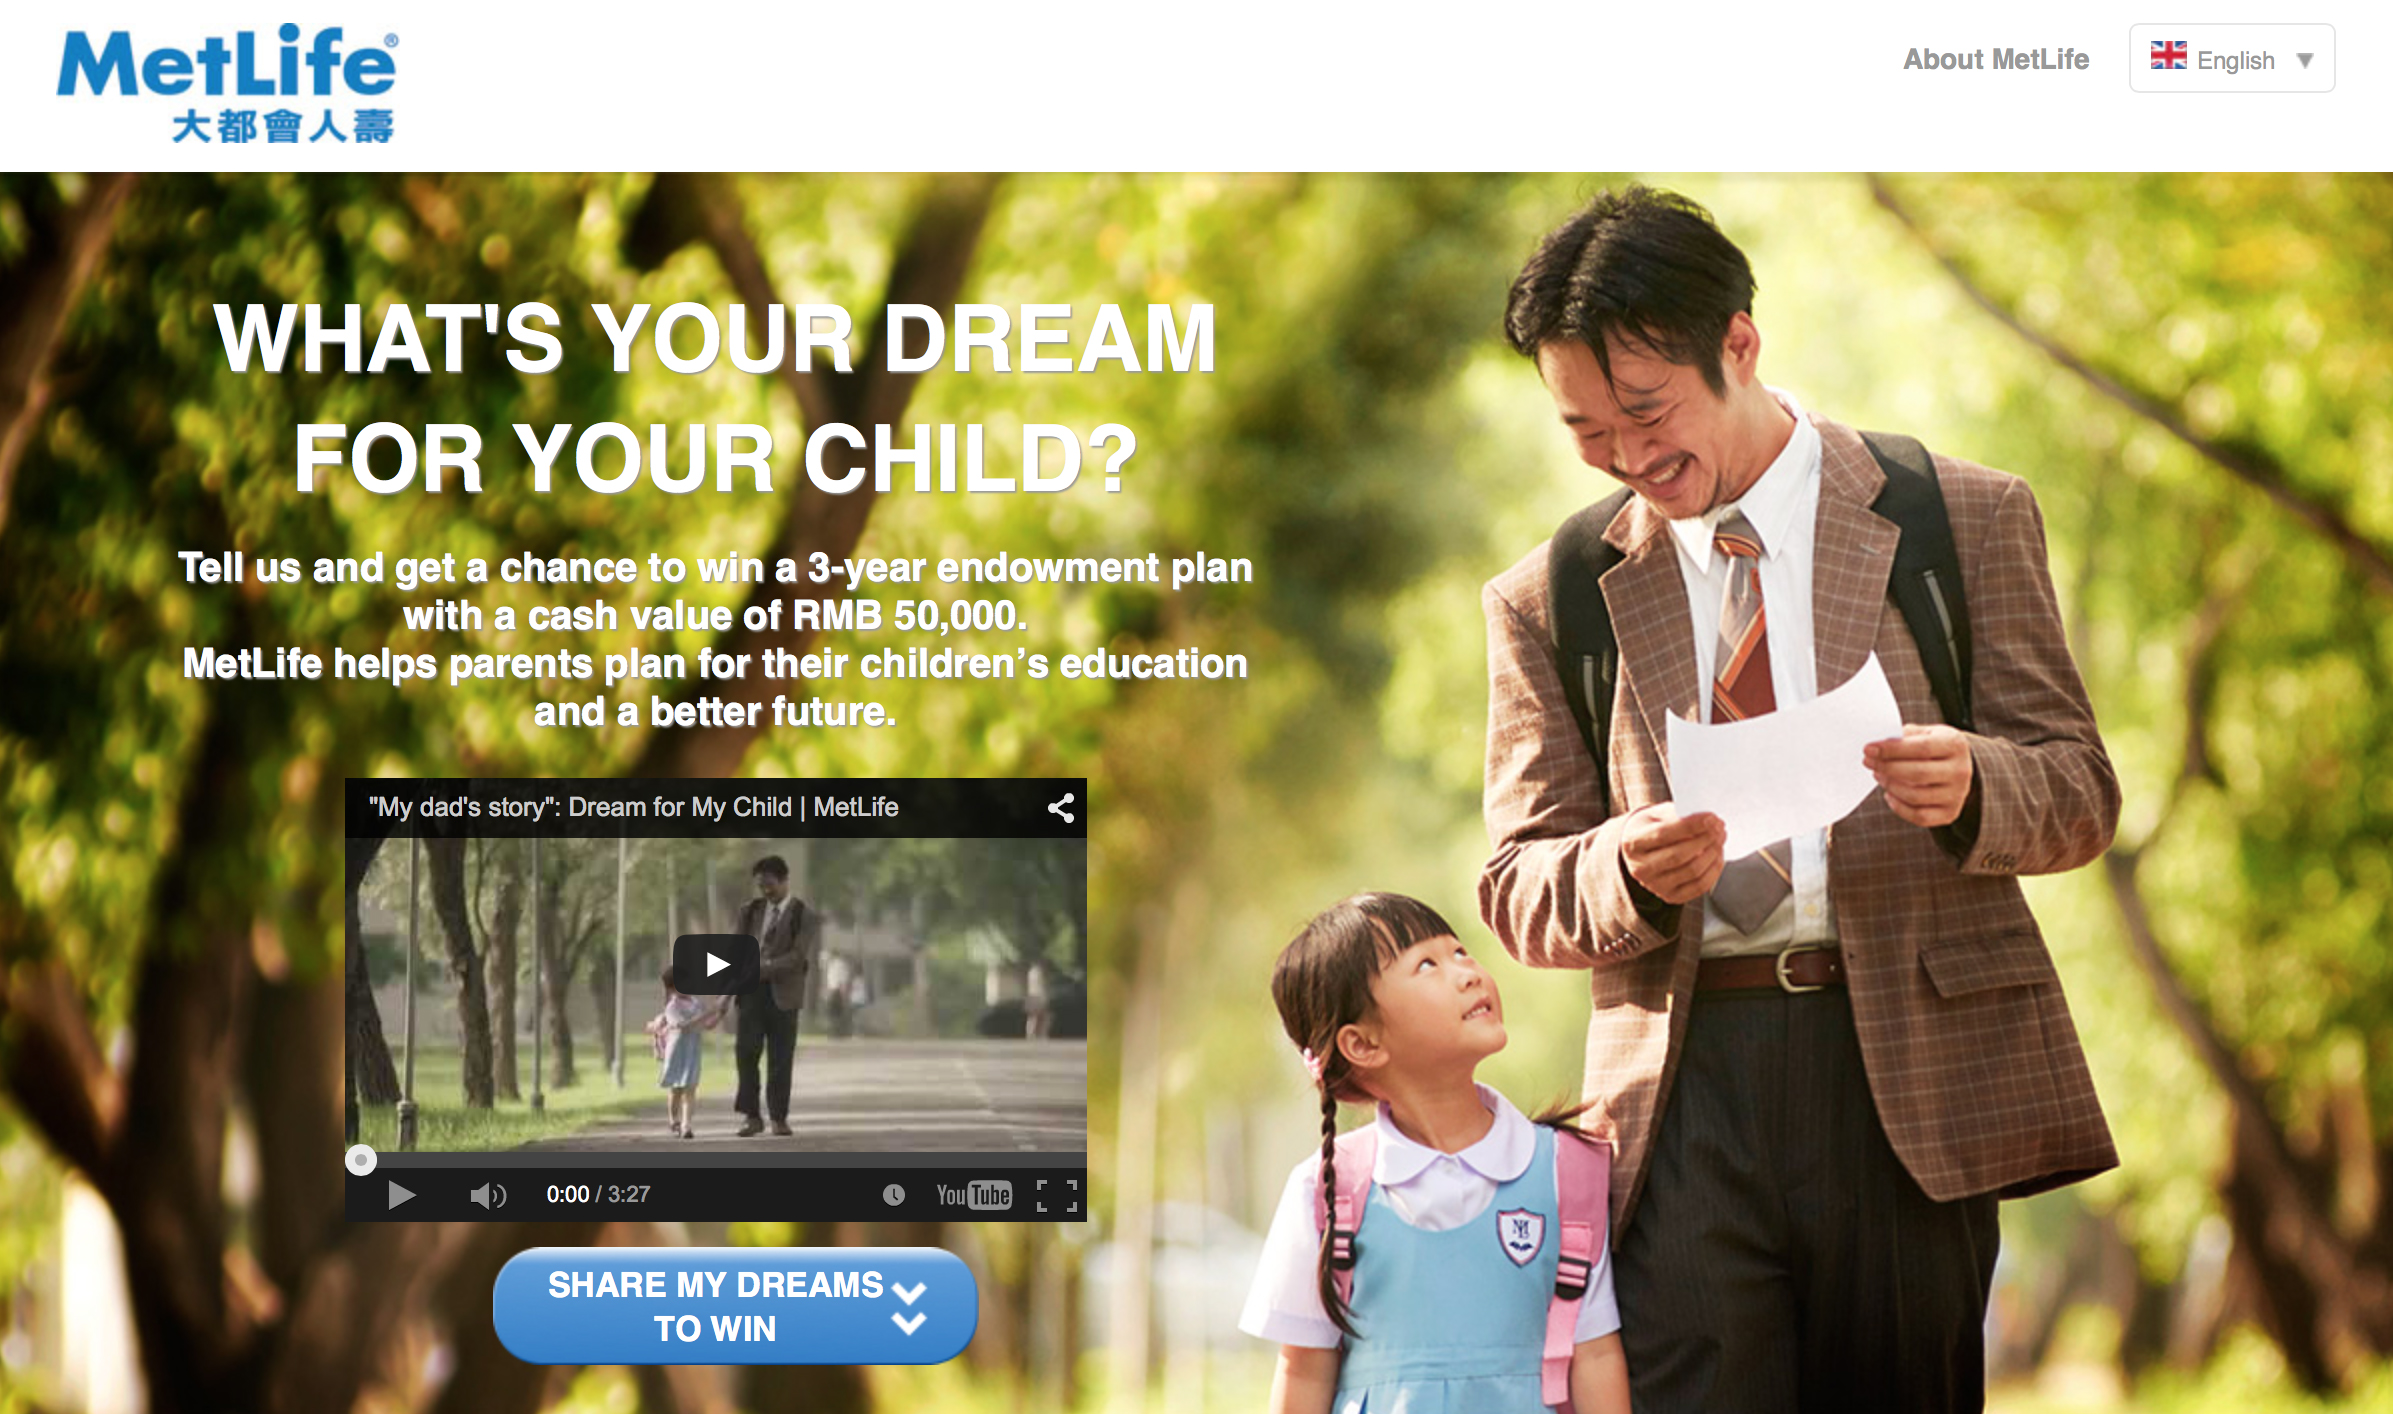 metlife shares my dad s story the inspiration room an error occurred